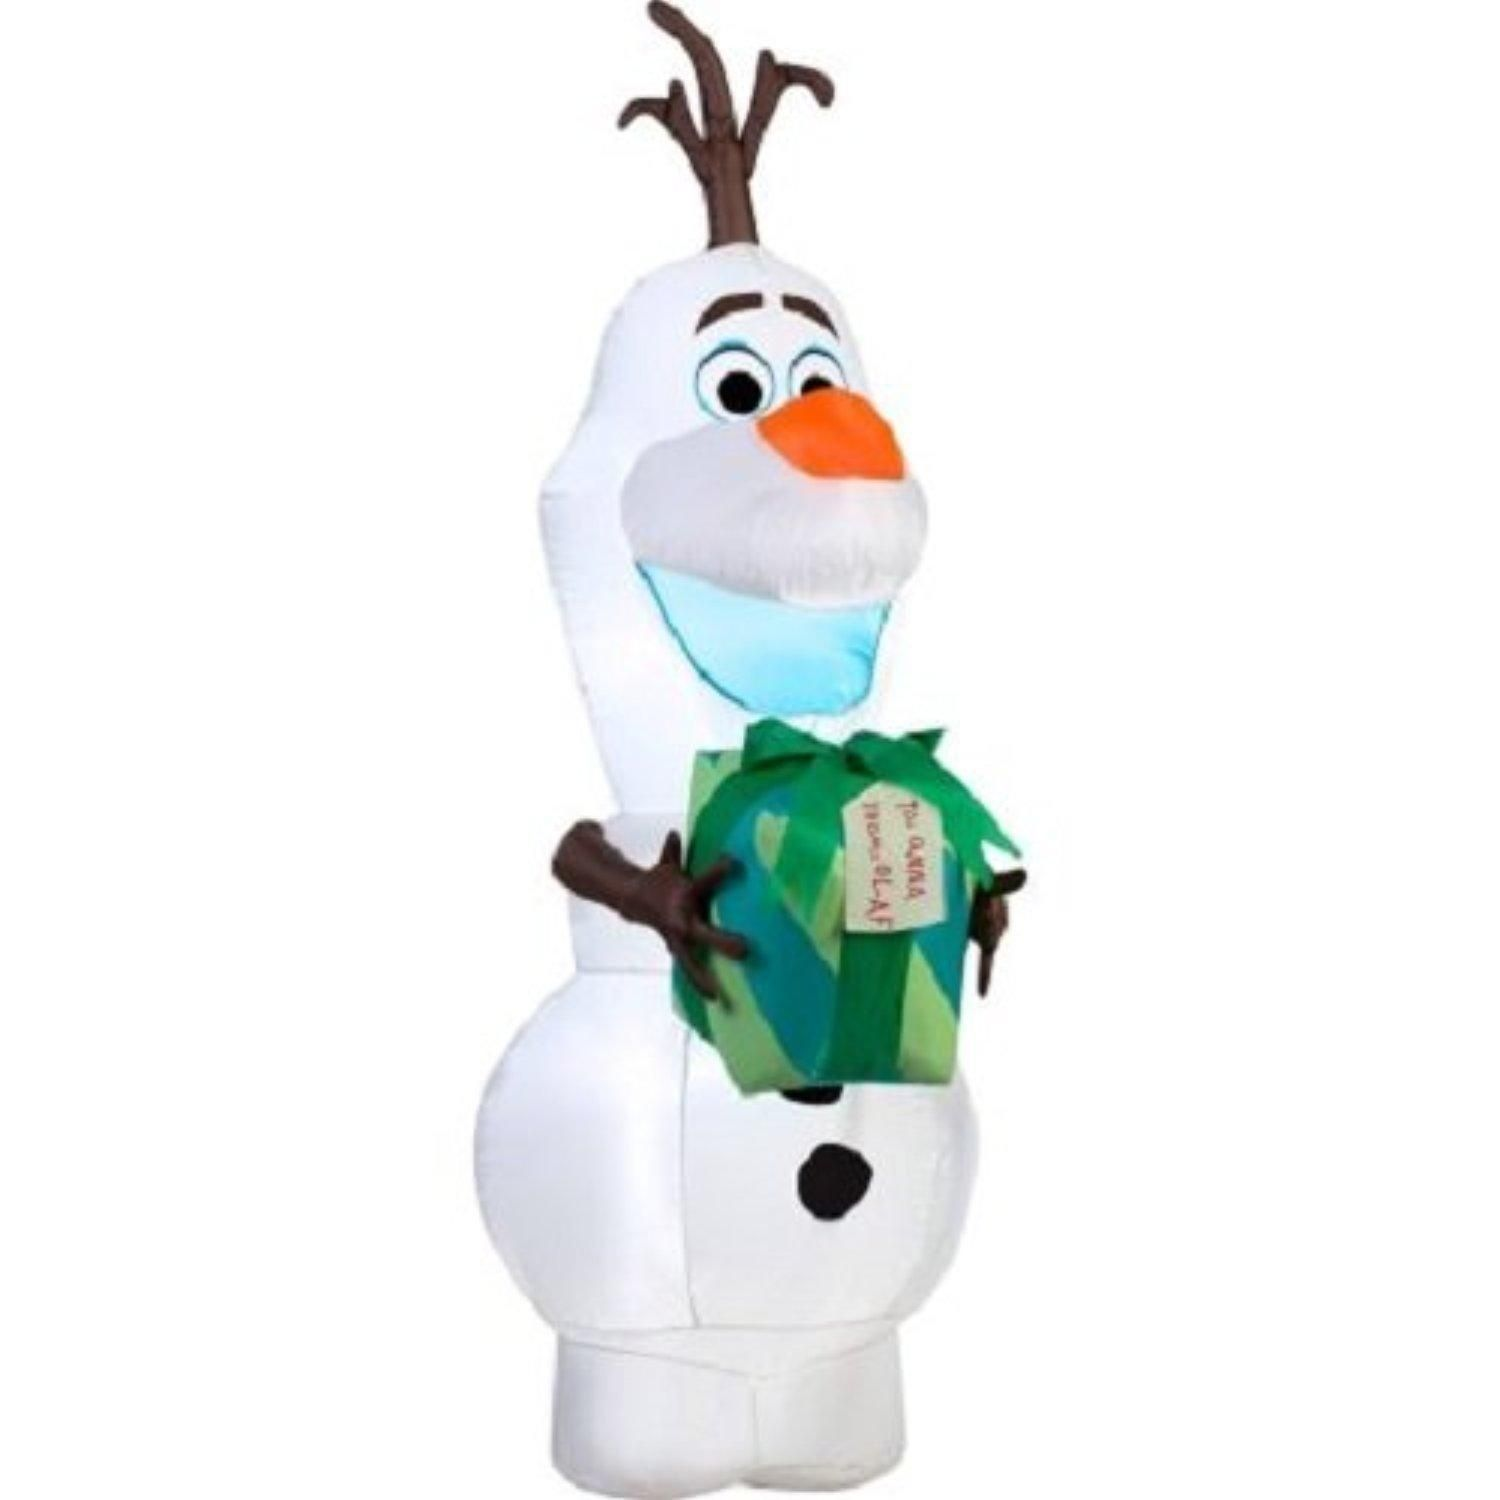 NEW Lawn Inflatables Christmas Airblown Yard Decor Airblown Inflatable  Disney Olaf With Gift, 5.5u0027